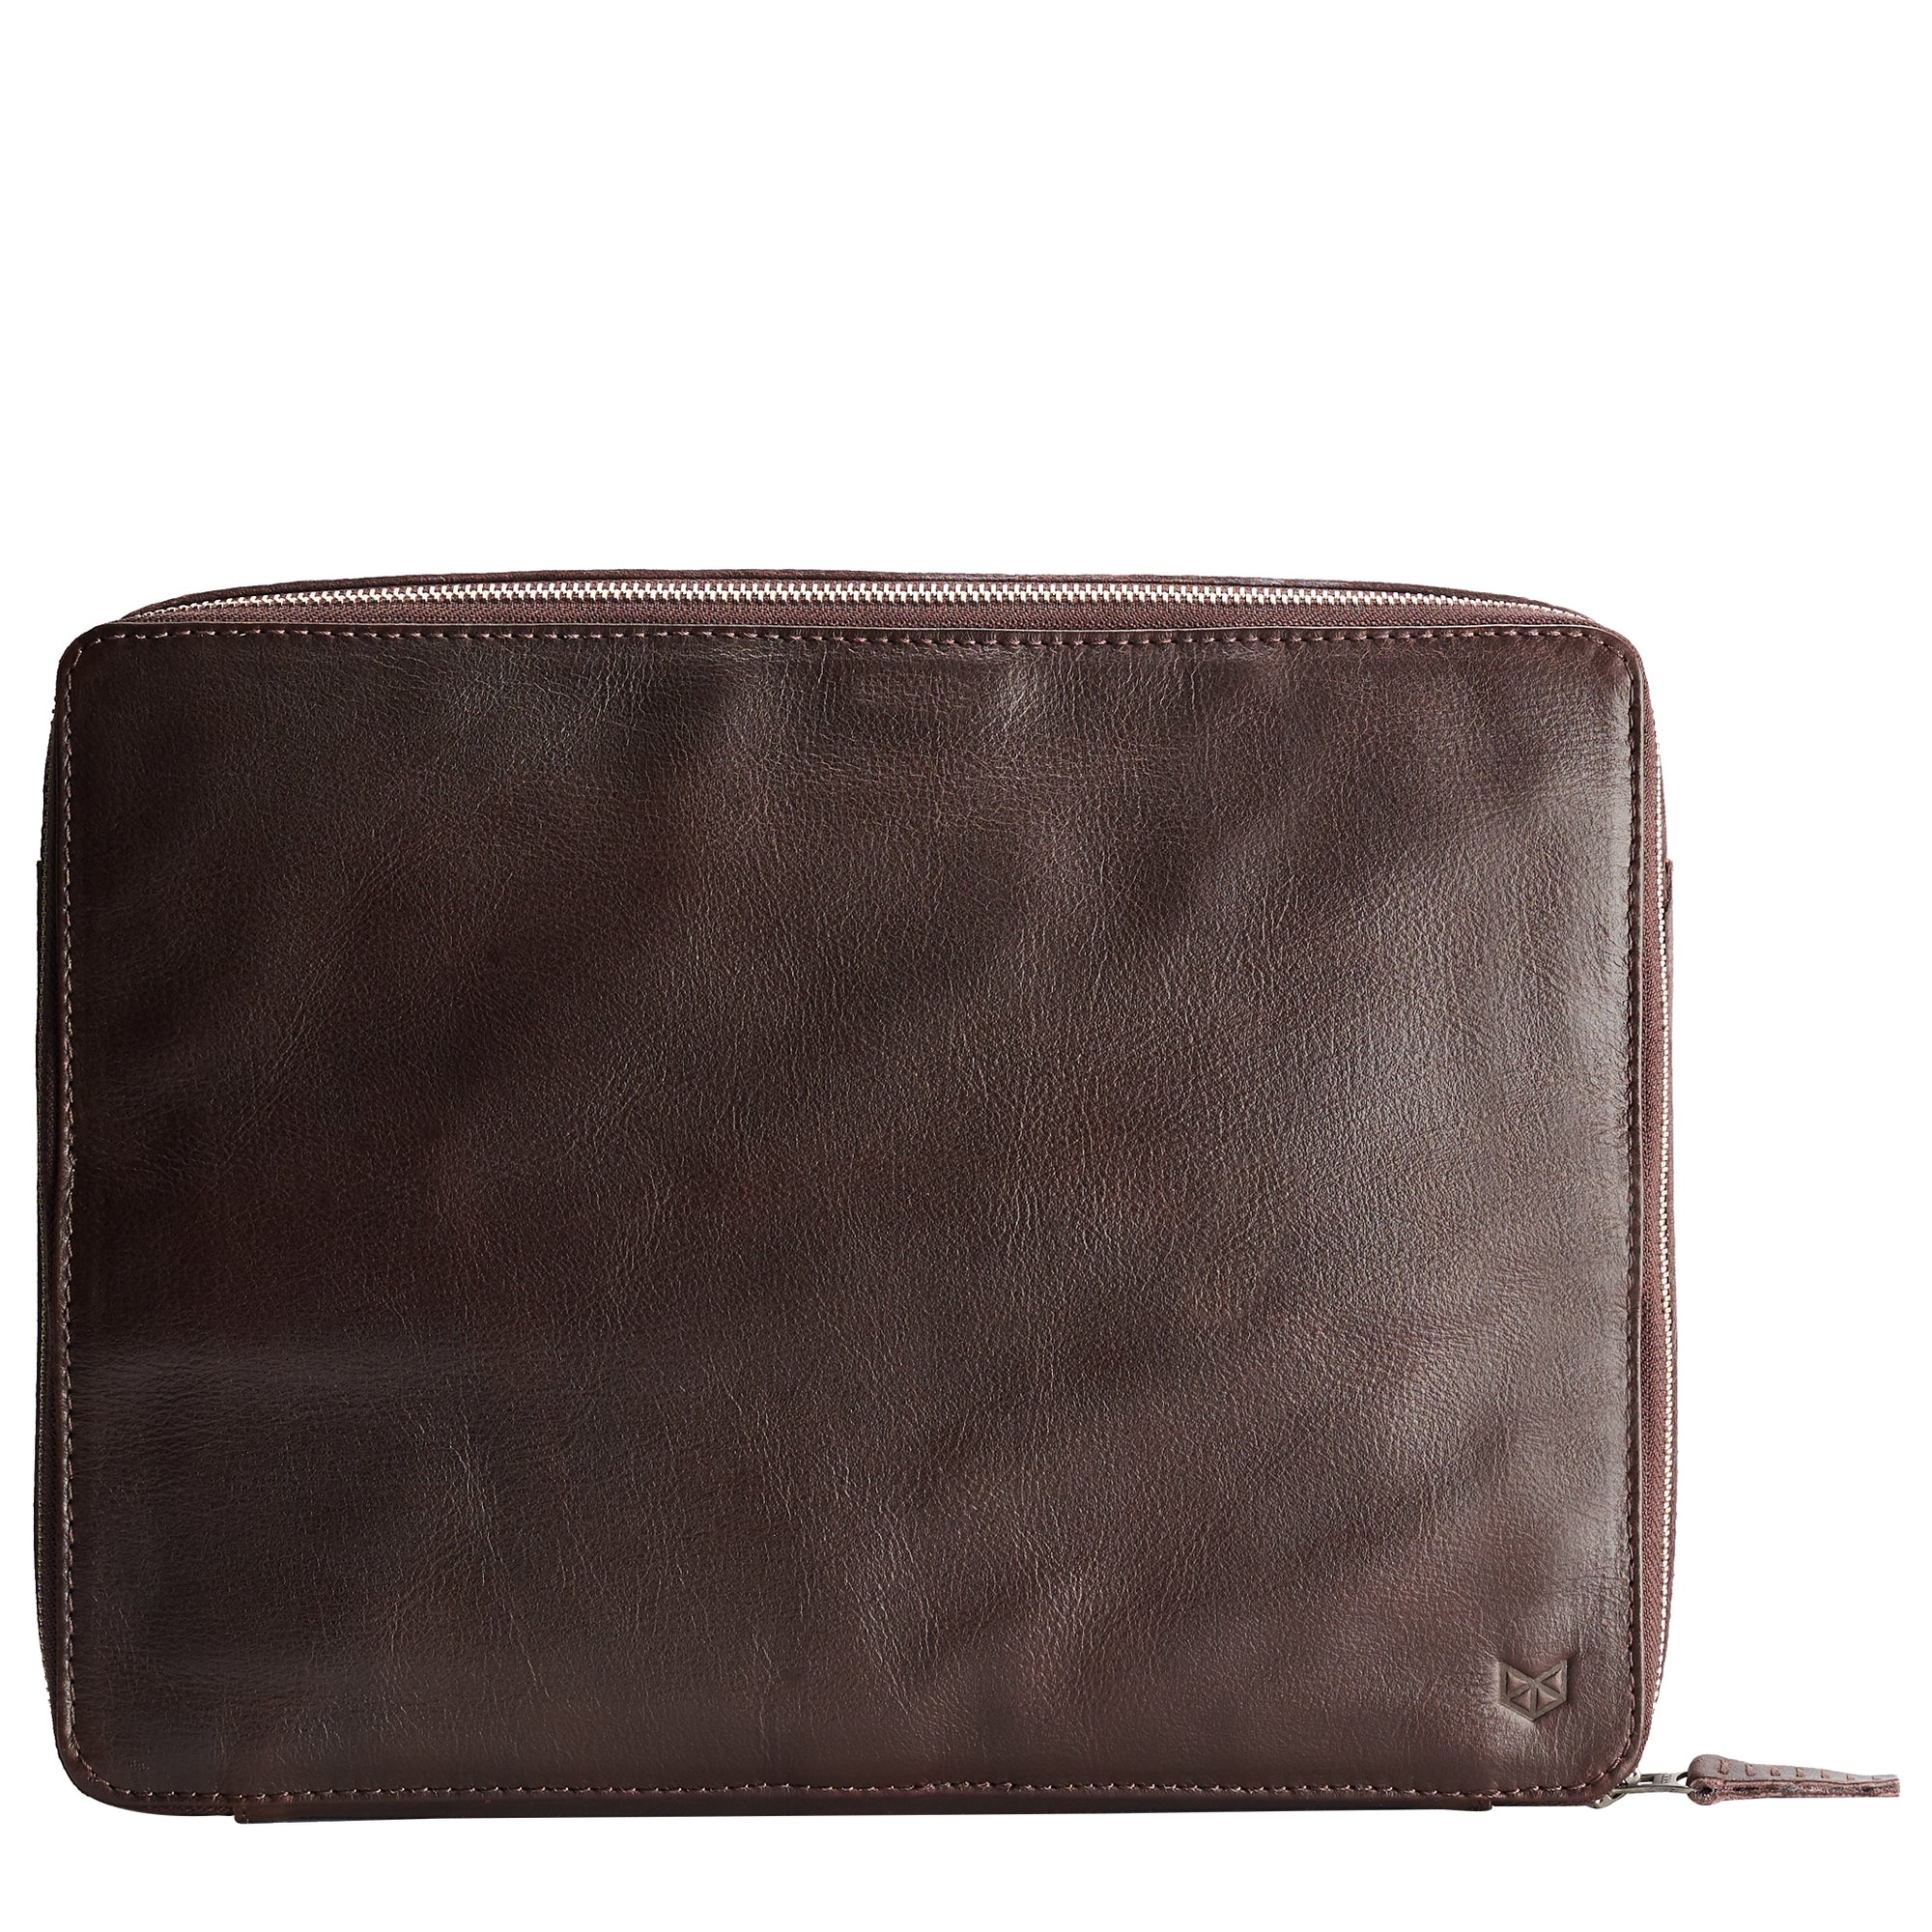 handmade dark brown tech laptop 15 inch tablet bag is perfect for a business travel.